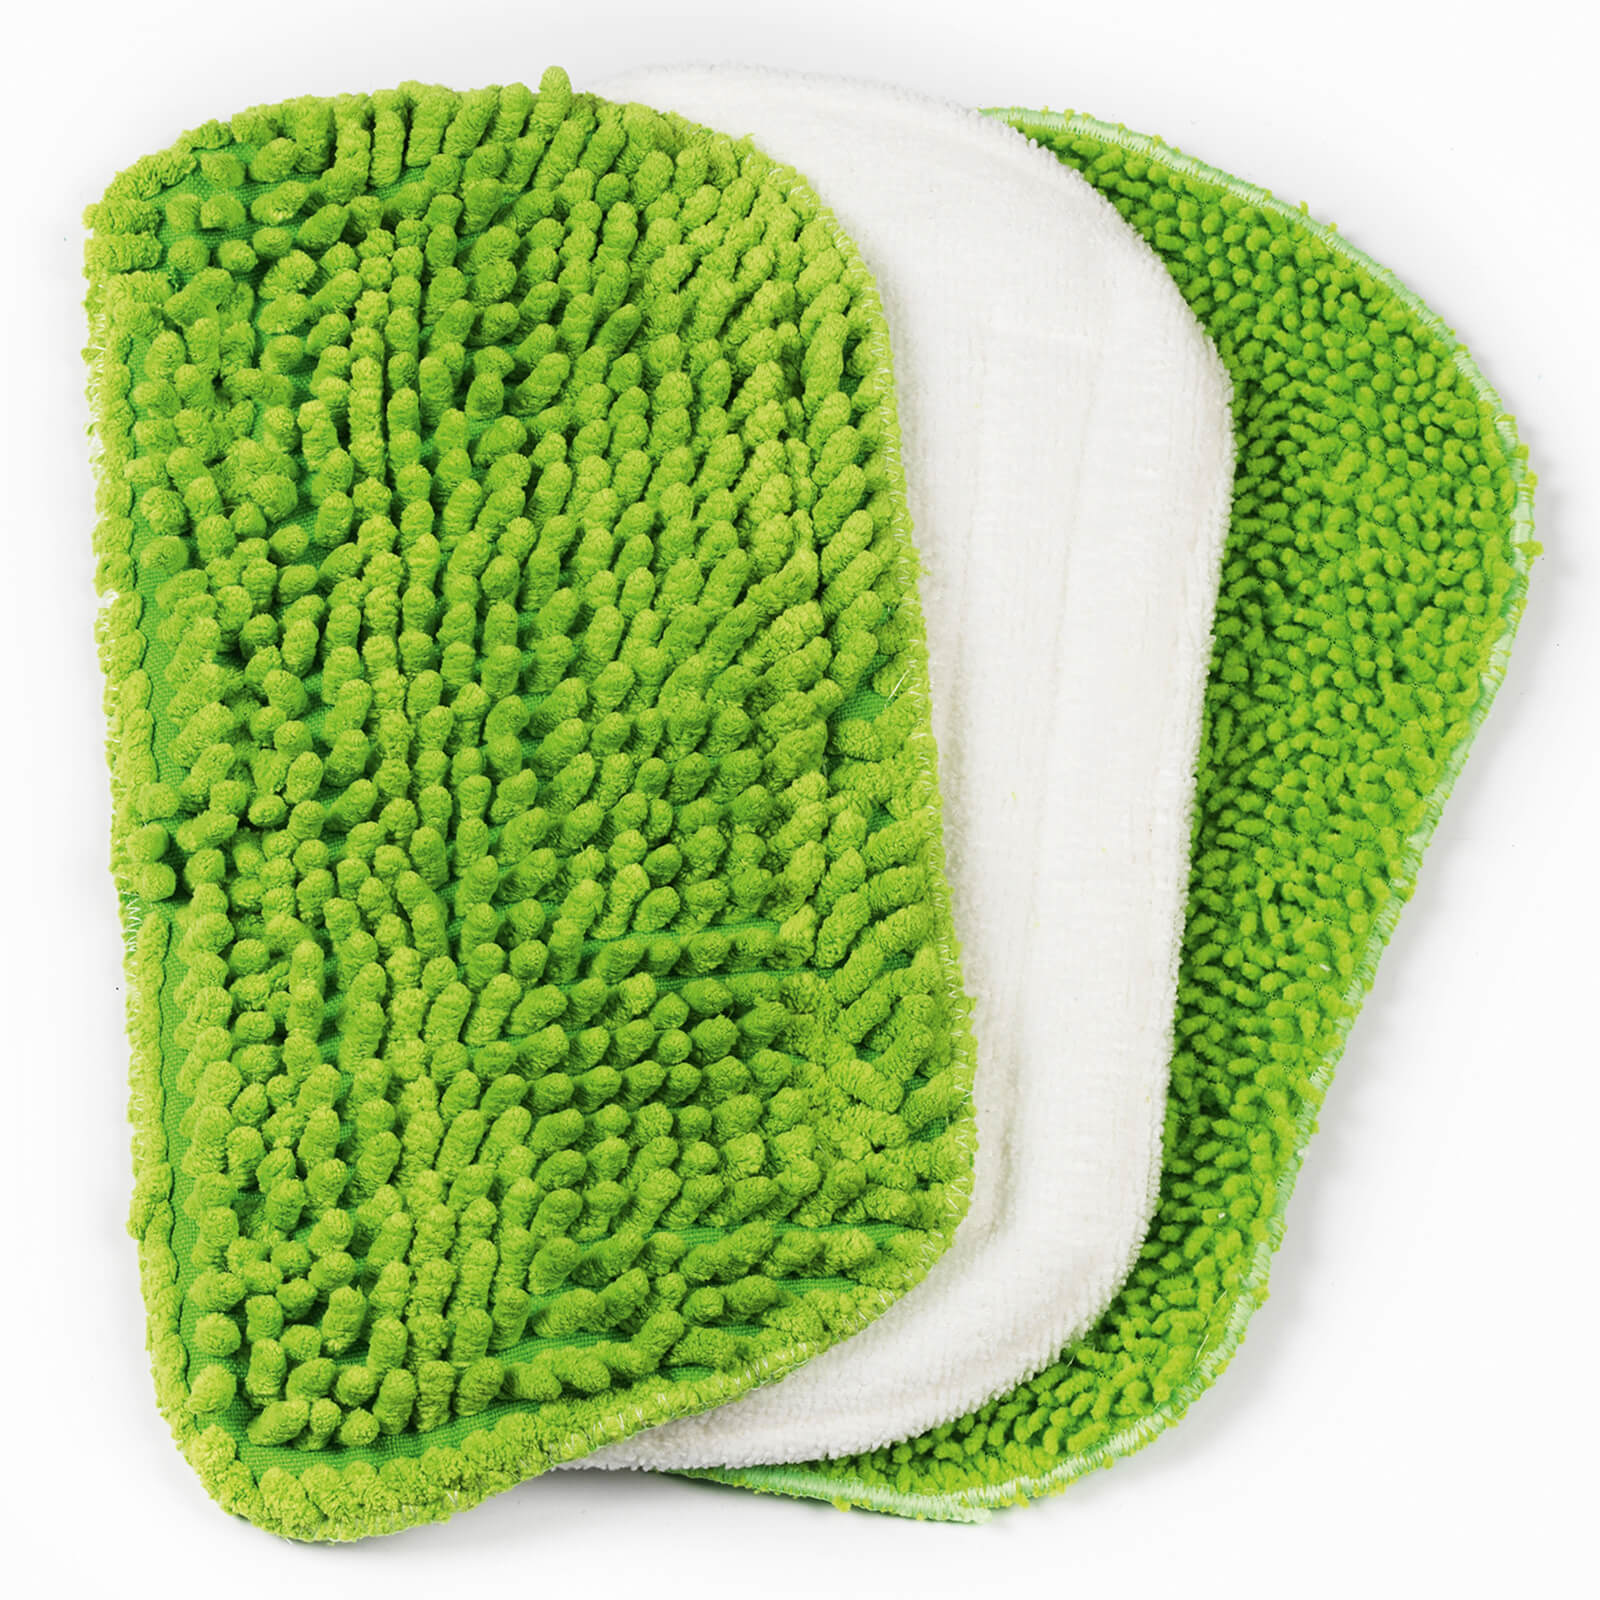 Pifco Set of 3 Mixed Pads for Pifco Steam Mop